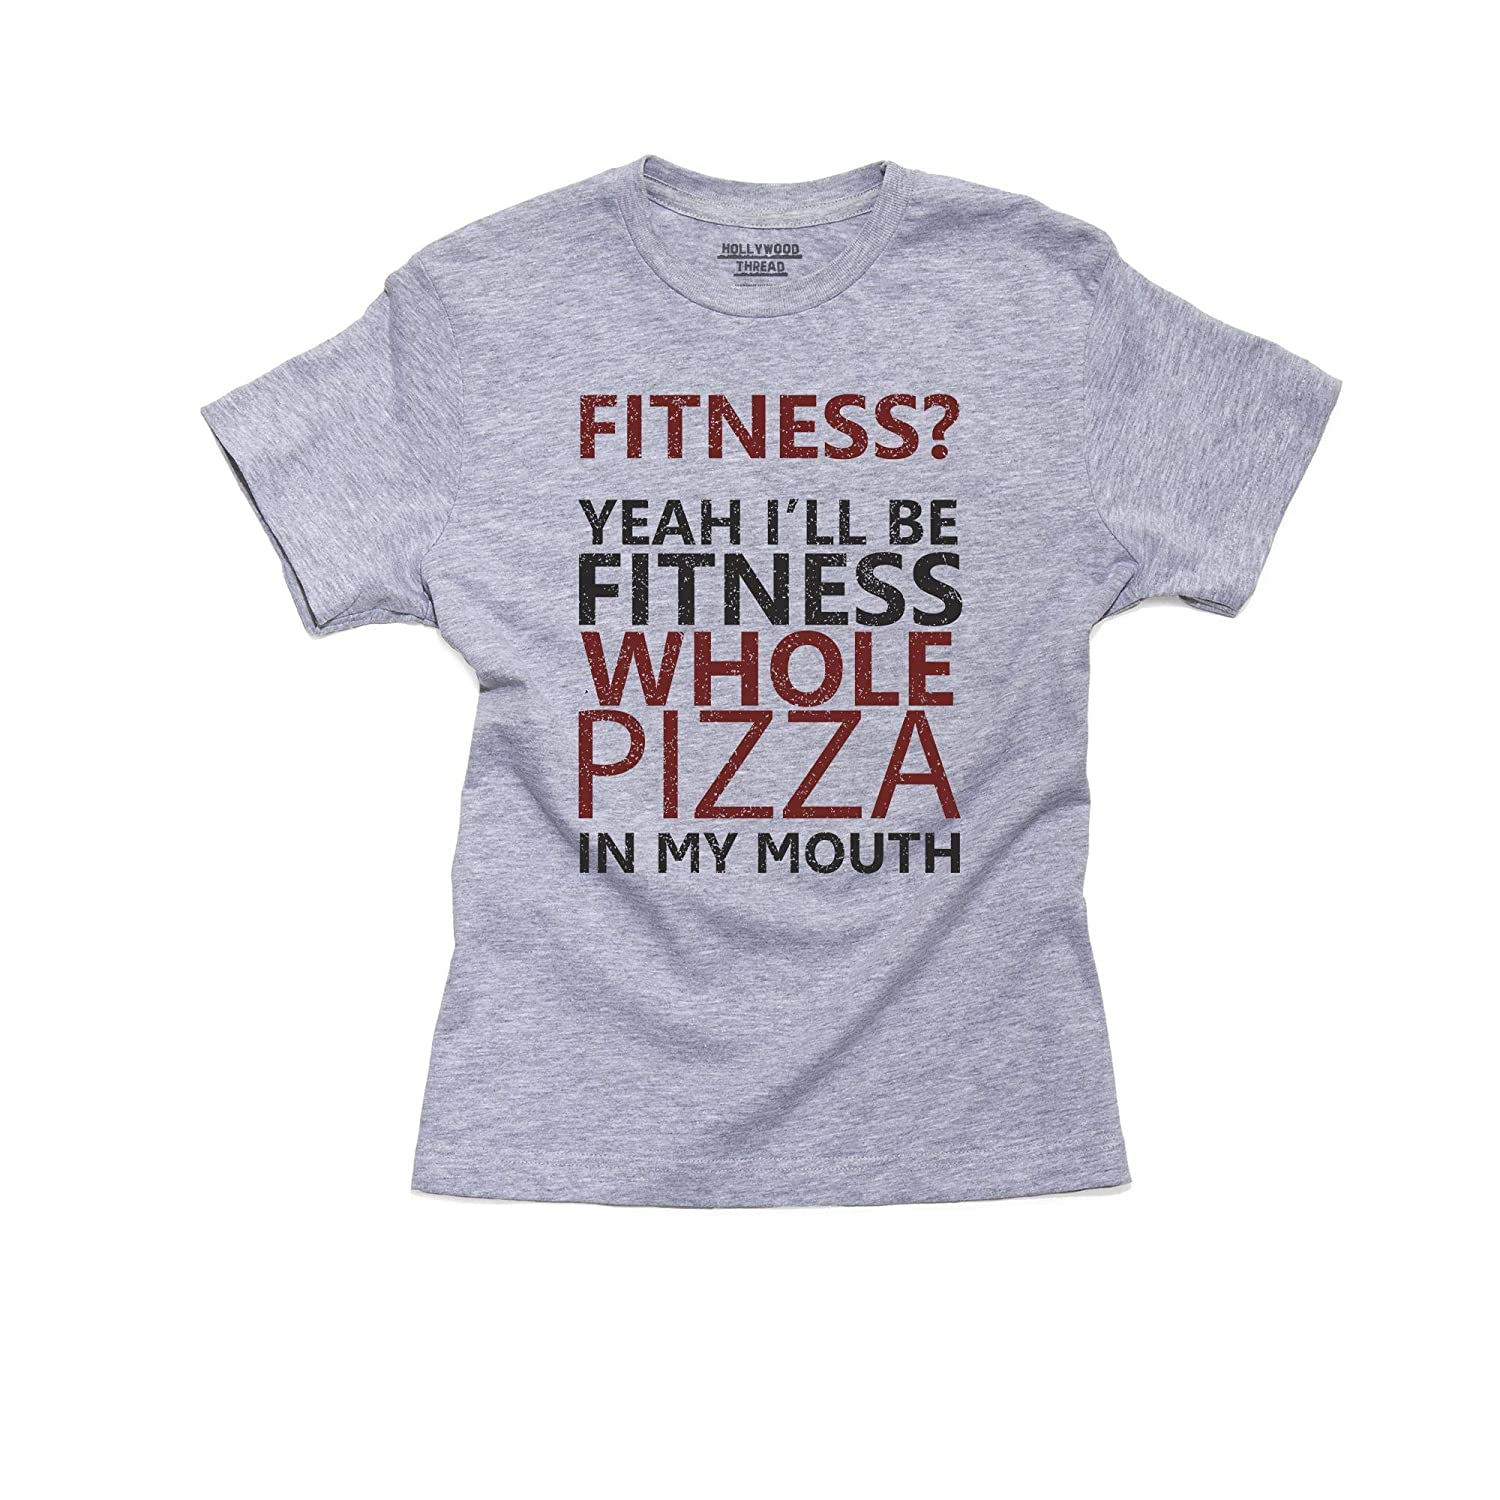 Funny Fitness? Yeah I'll Be Fitness Whole Pizza in My Mouth Youth Size T-Shirt